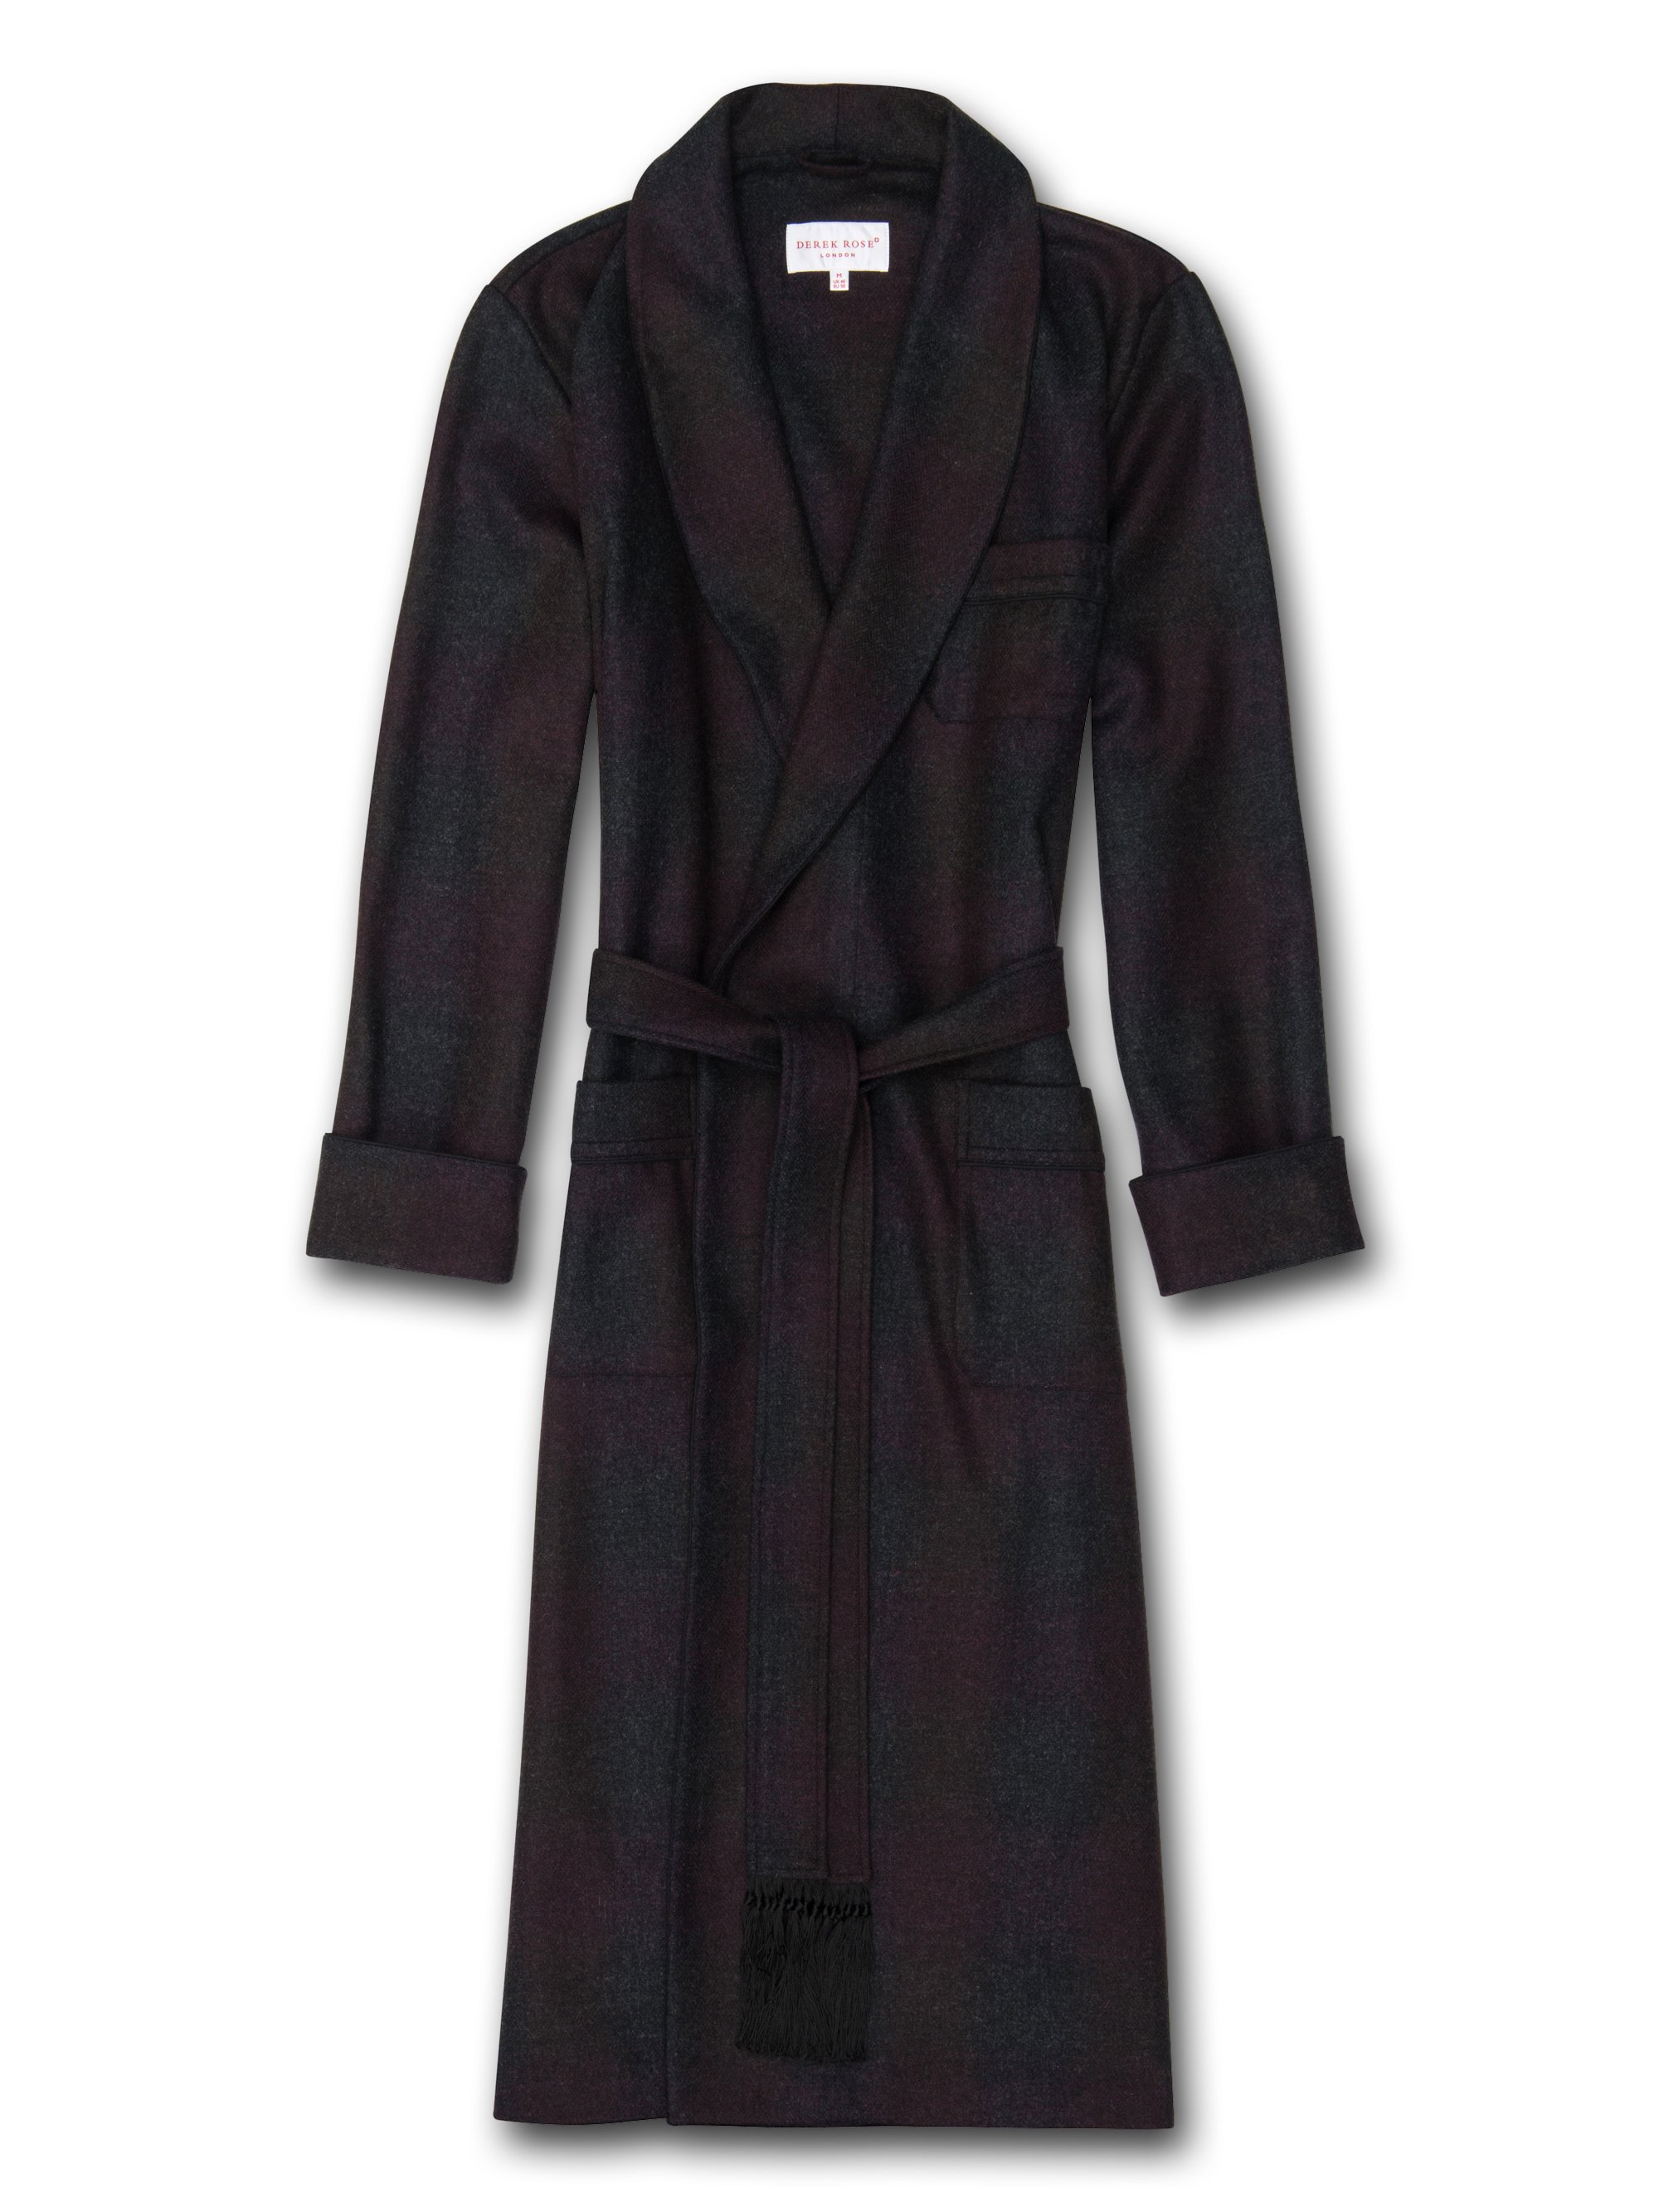 Men's Tasseled Belt Dressing Gown Lancaster Pure Wool Multi